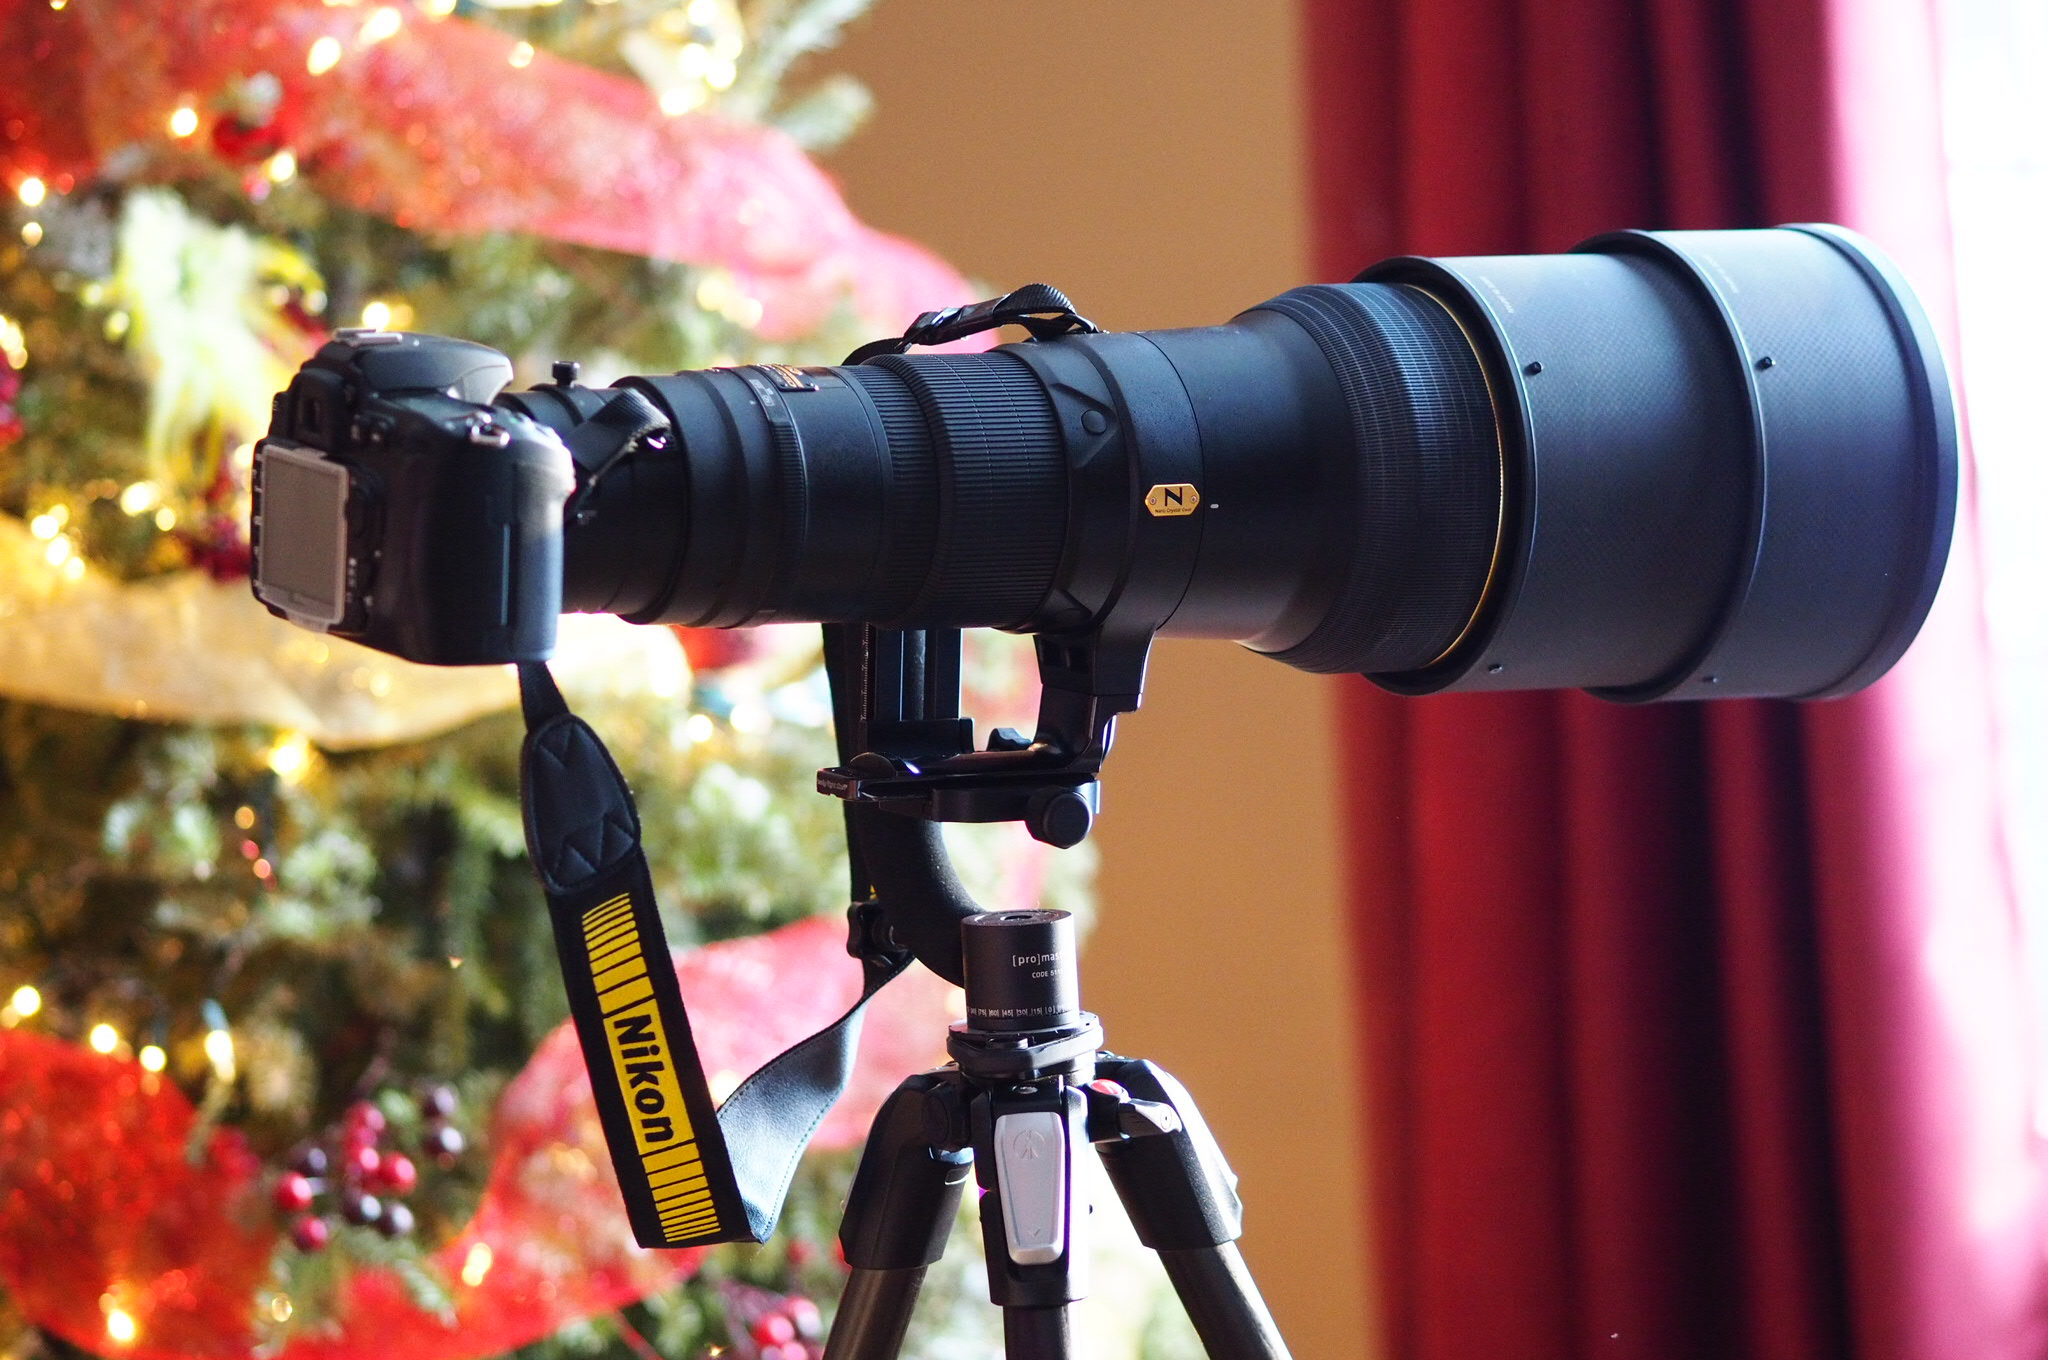 D300 + 600mm f/4 = 900mm of awesomeness.